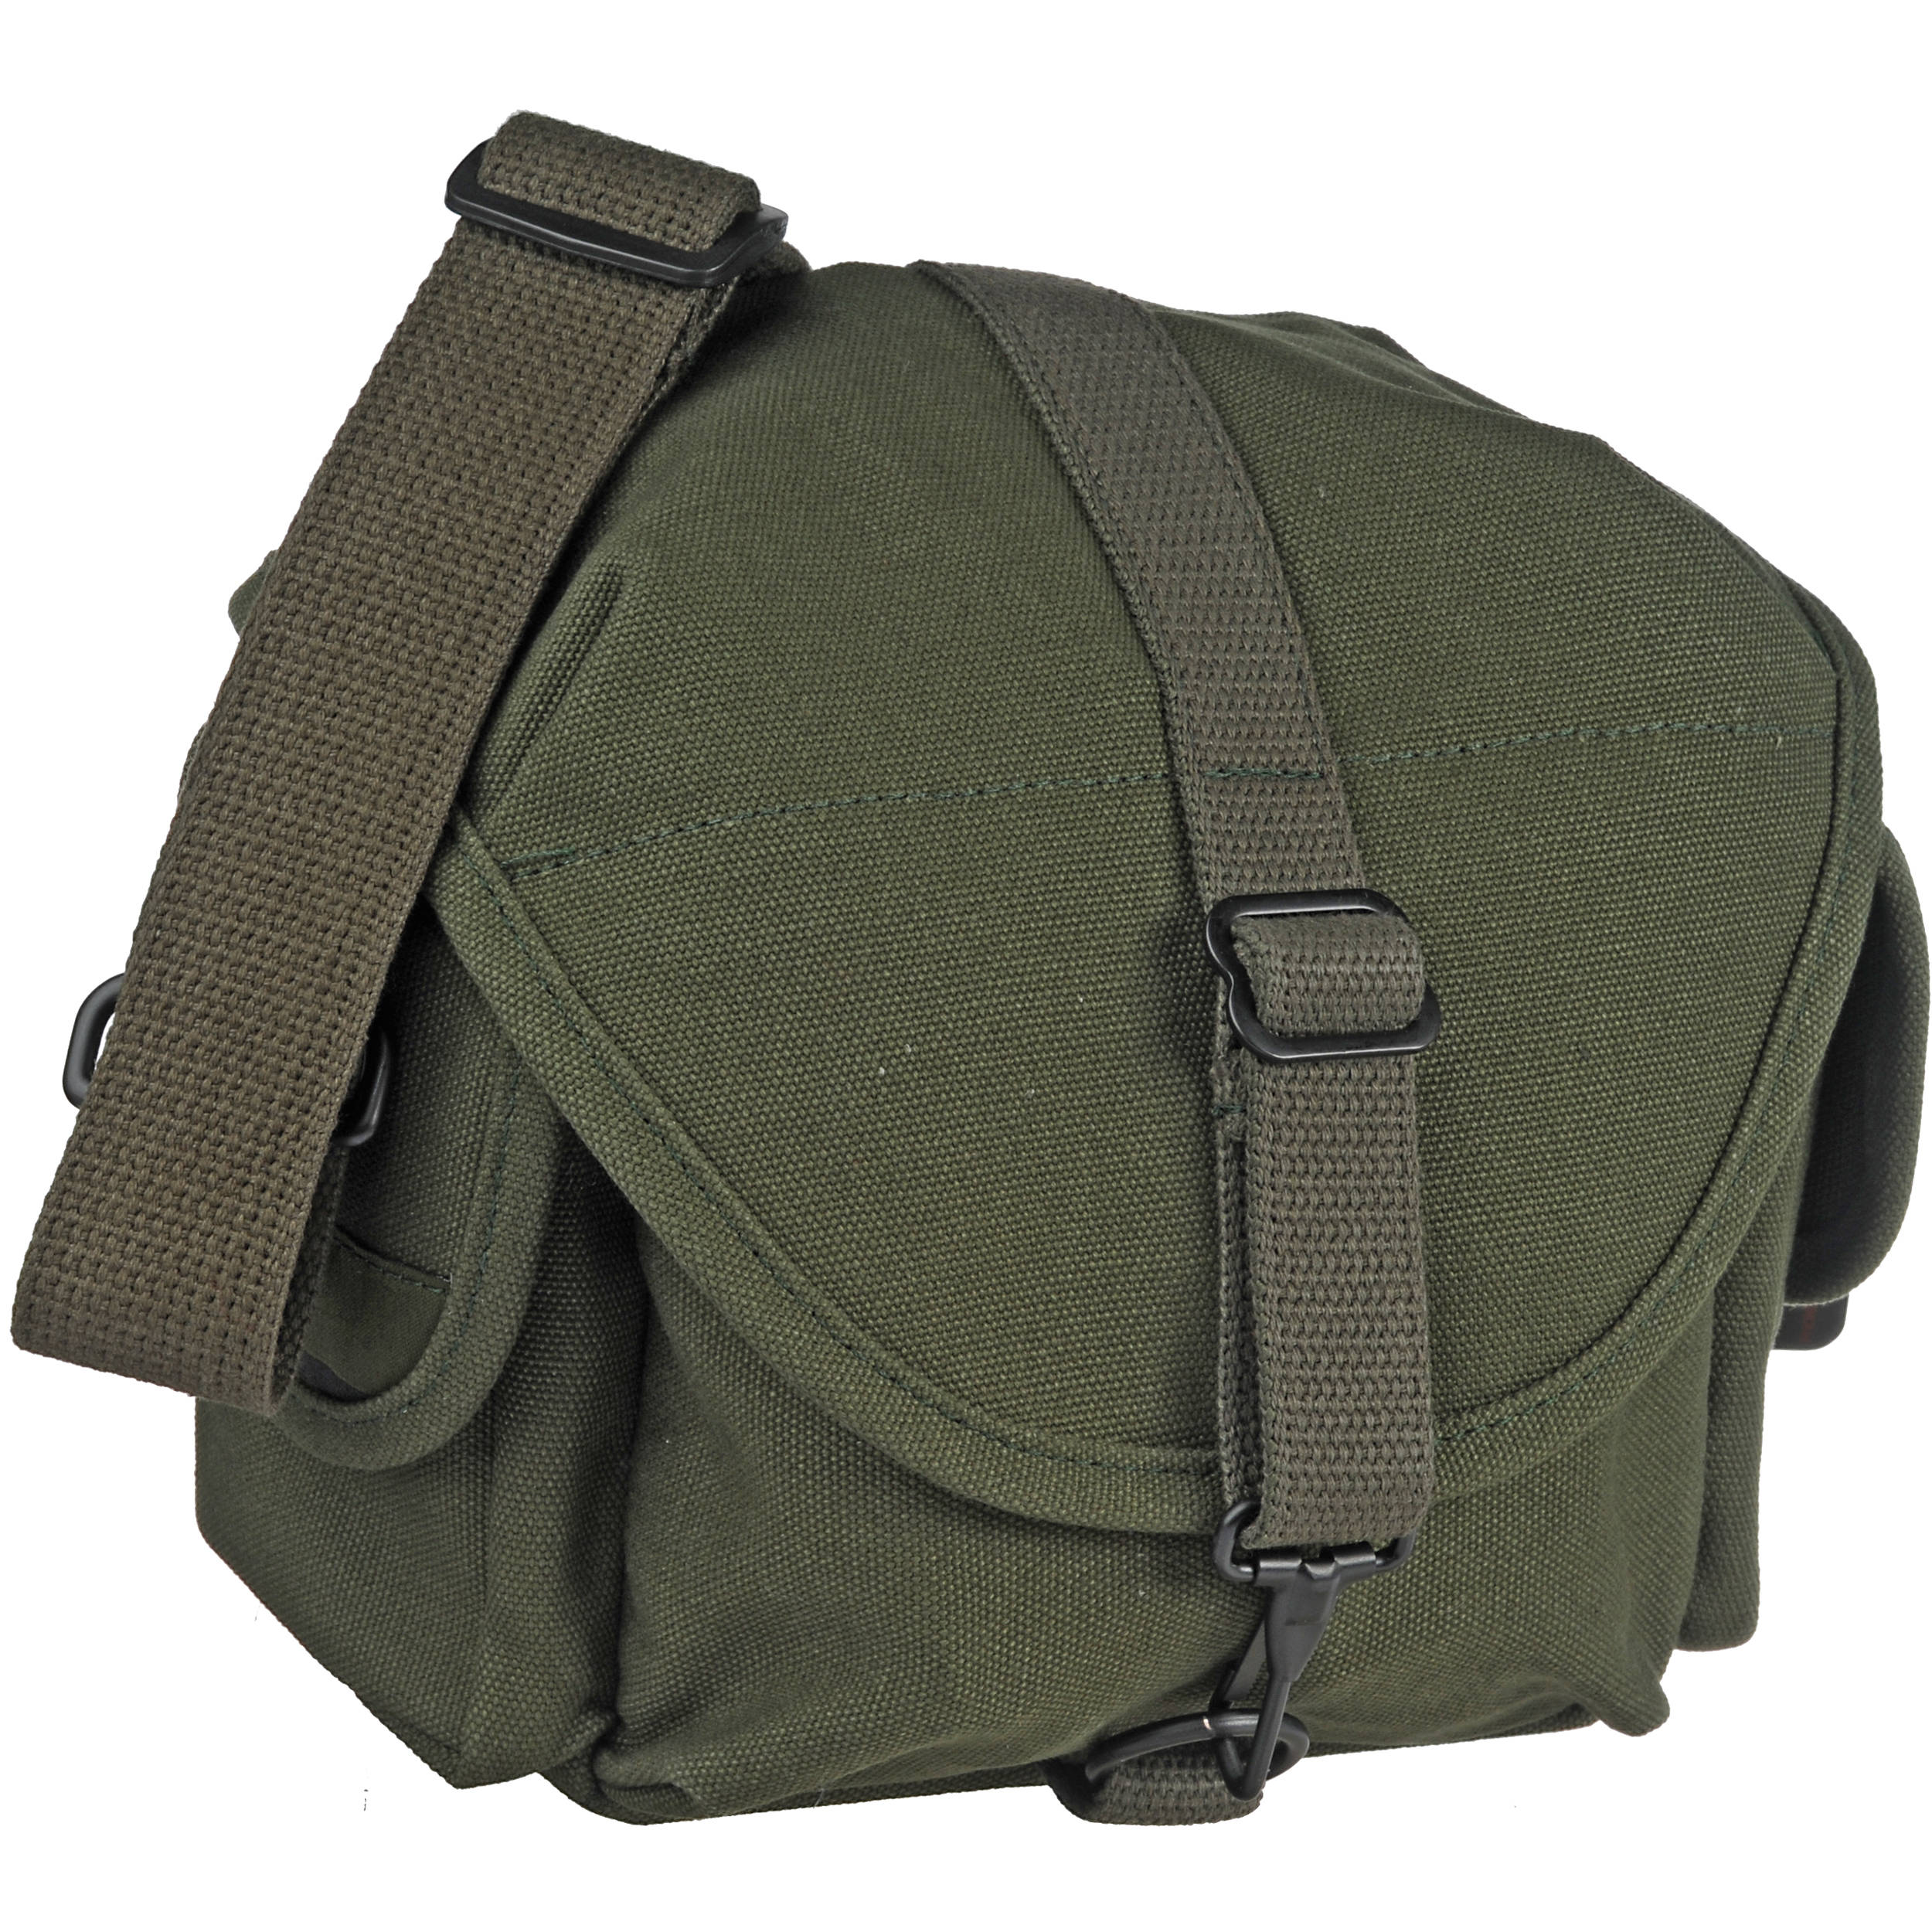 Domke F-8 Small Canvas Shoulder Bag (Olive) 700-80D B&H Photo